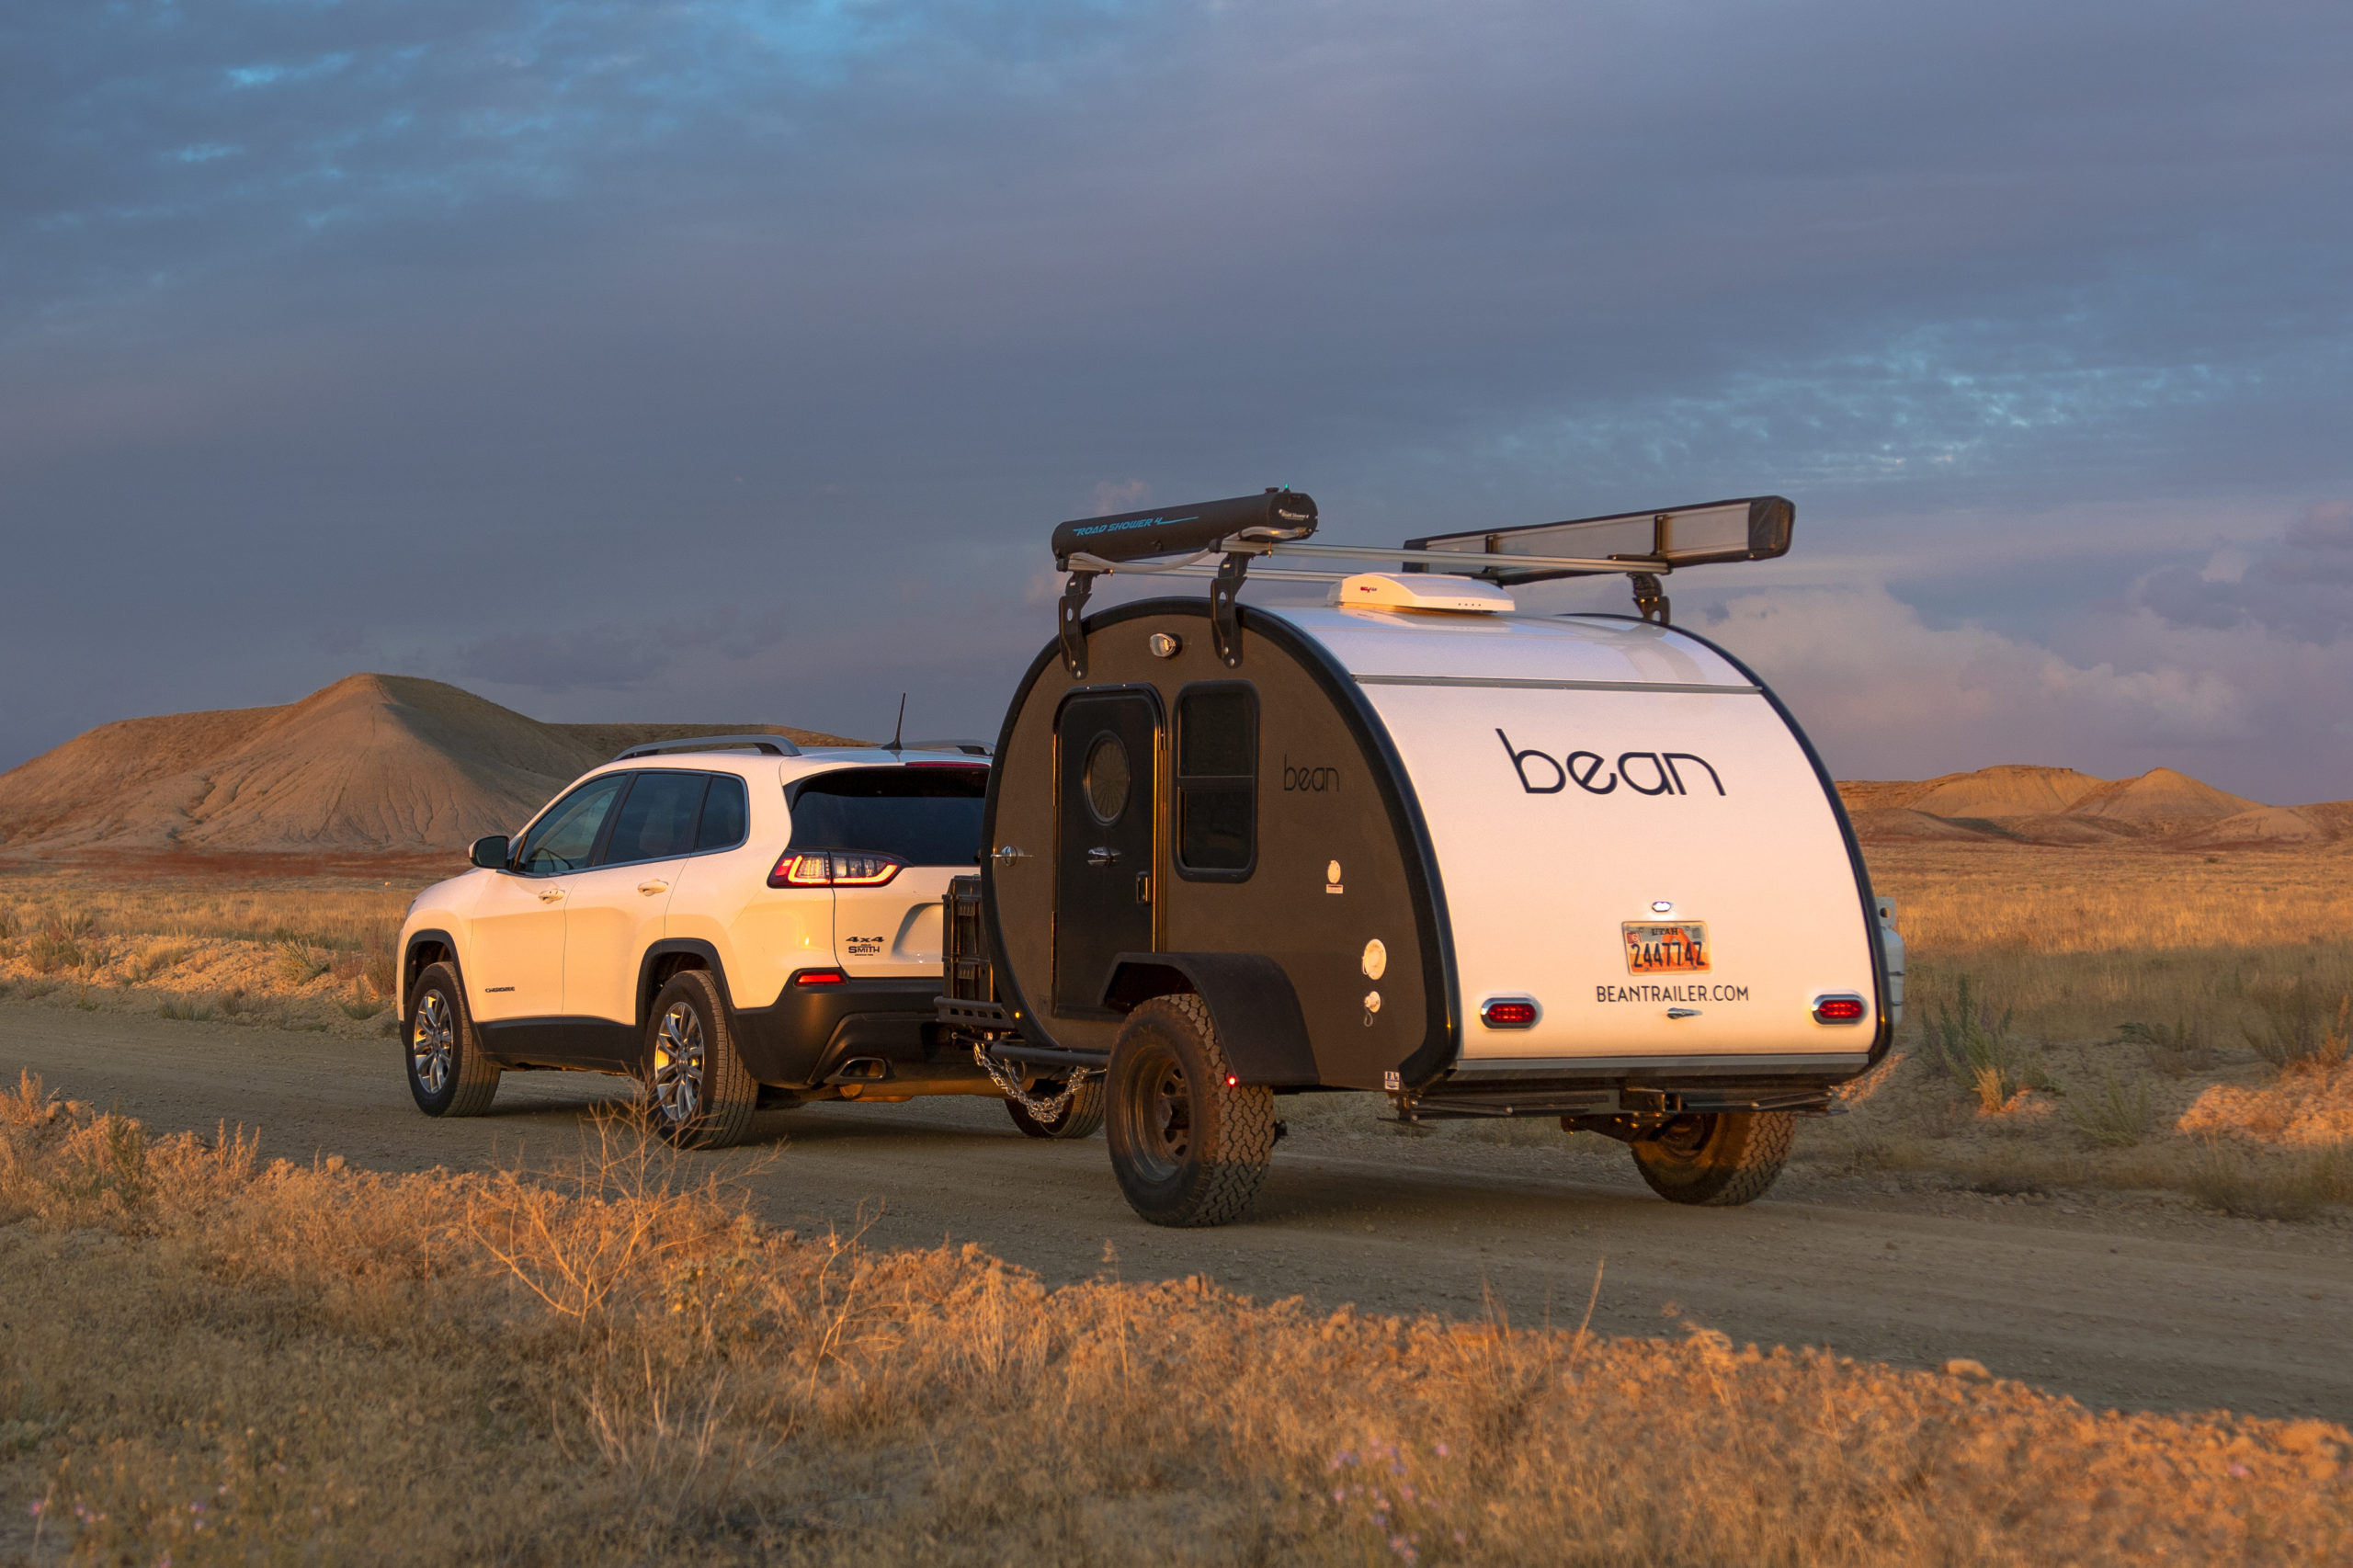 How To Install Air Bags For Better Towing With Your CUV